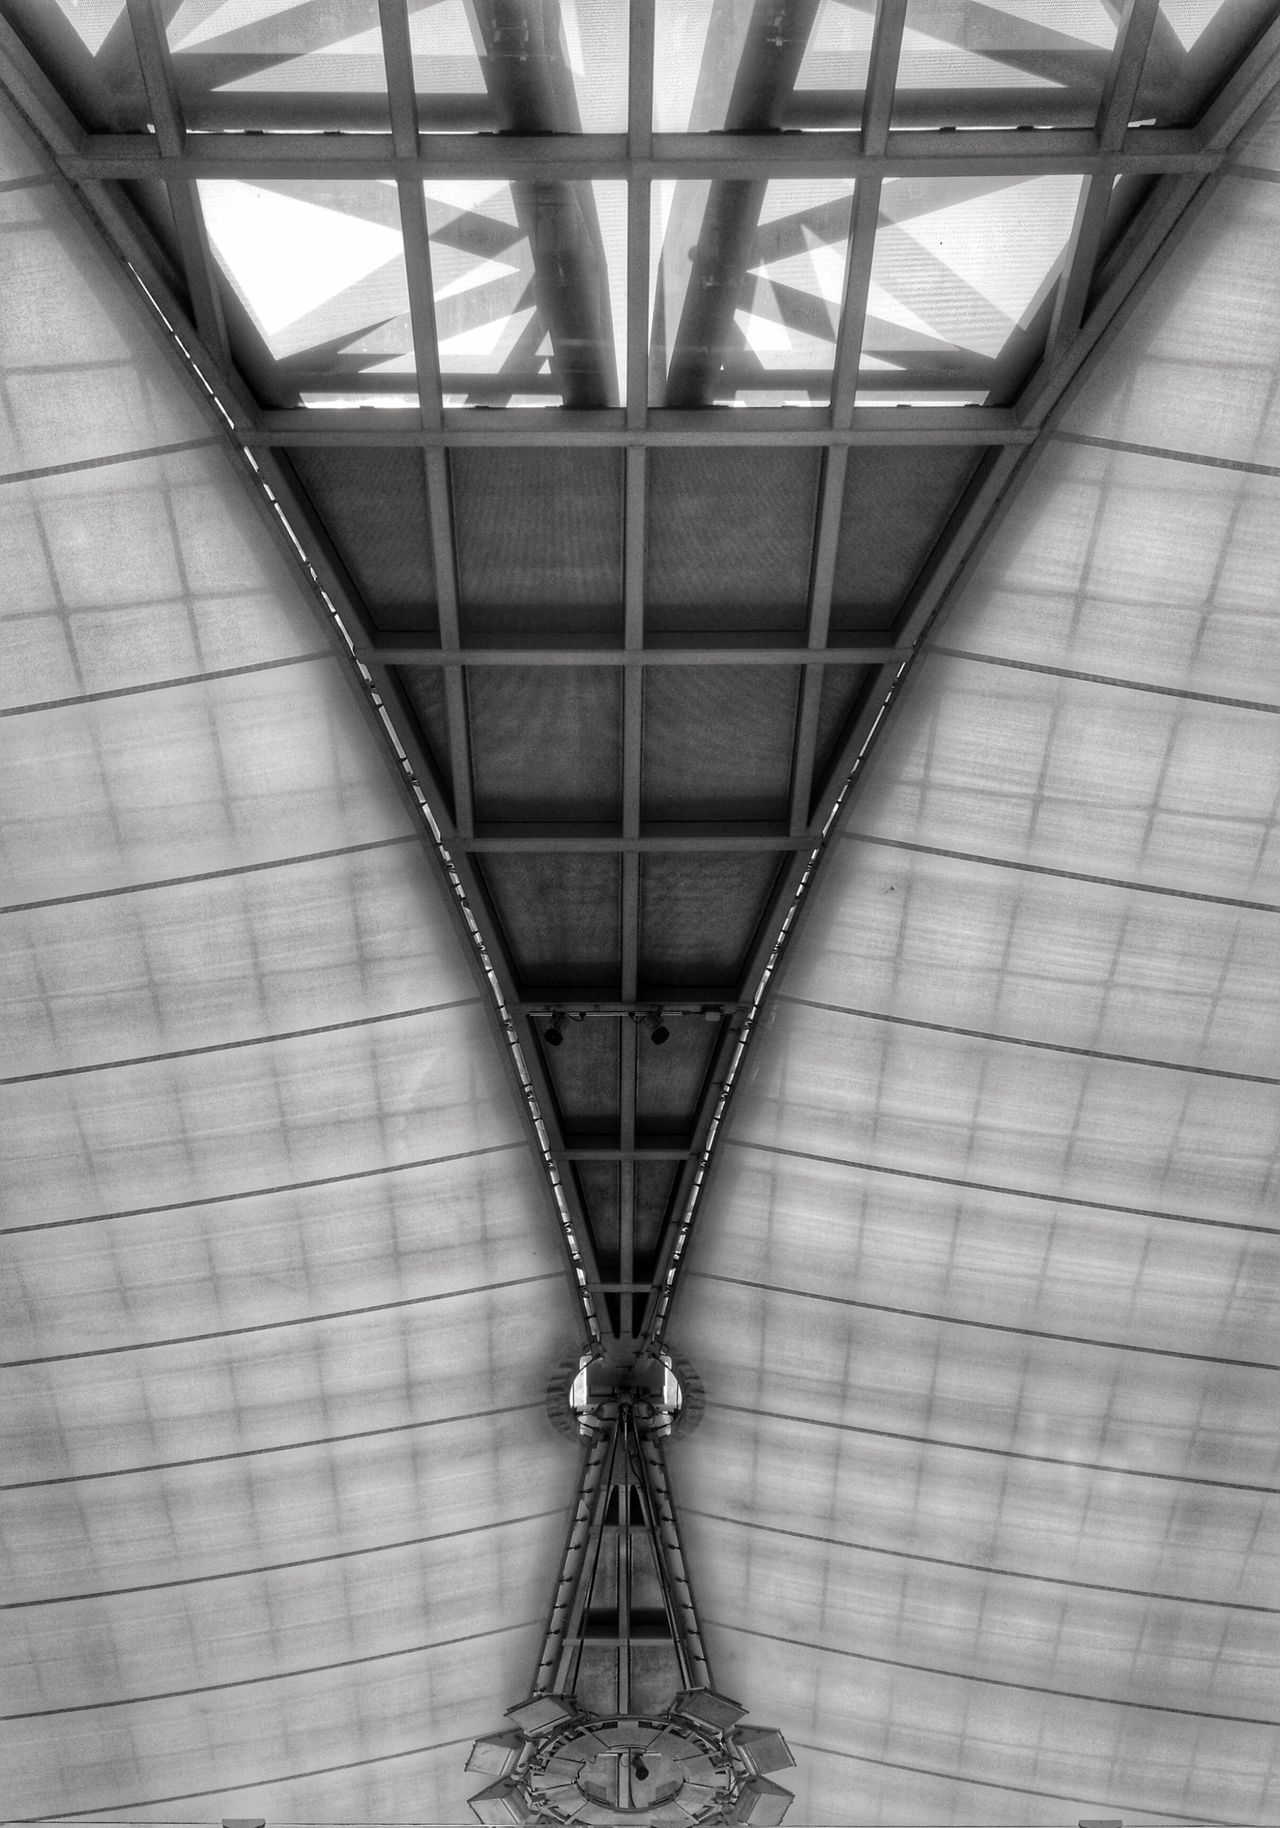 EyeEmBestEdits EyeEmbestshots Eye4photography  EyeEm Best Edits EyeEm Gallery EyeEm Best Shots Architectural Detail Eyeemphotography Architecturelovers Architectural Feature Arch Architecture EyeEm Best Shots - Architecture Architectureporn Structure Bnw Rsa_bnw Rsa_architecture Architecture_bw Architectural Column ArchiTexture Architektur Archilovers Architecture_collection Architecture Details